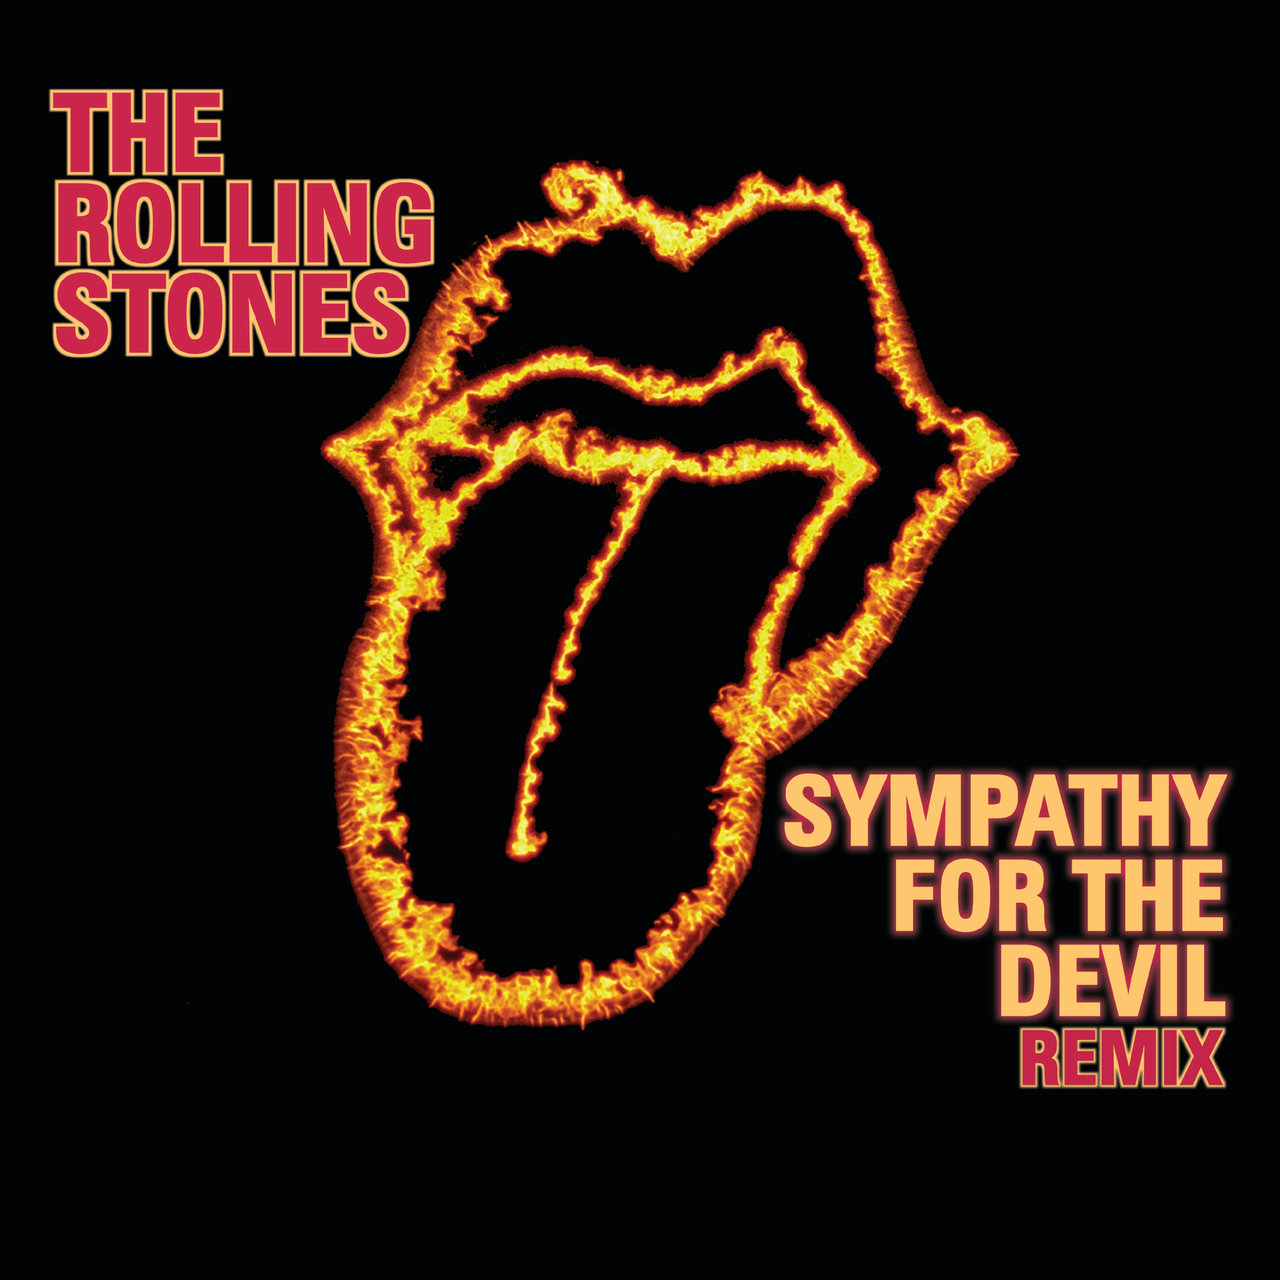 Sympathy For The Devil Remix